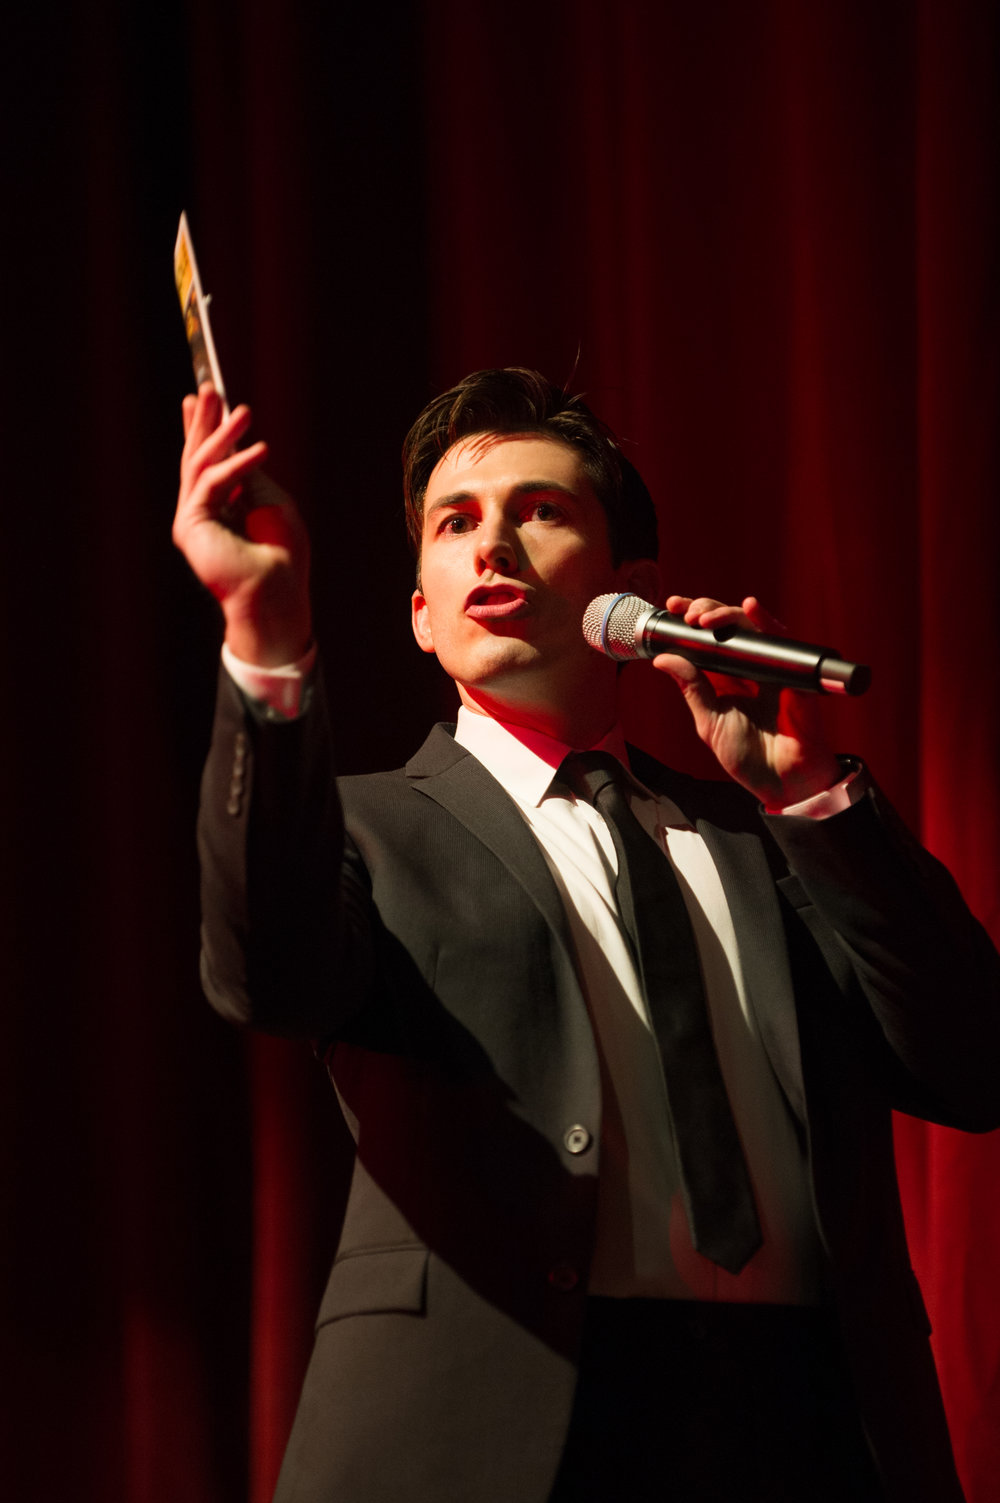 Josh's speech at the Opening Night of the Seminole Theatre